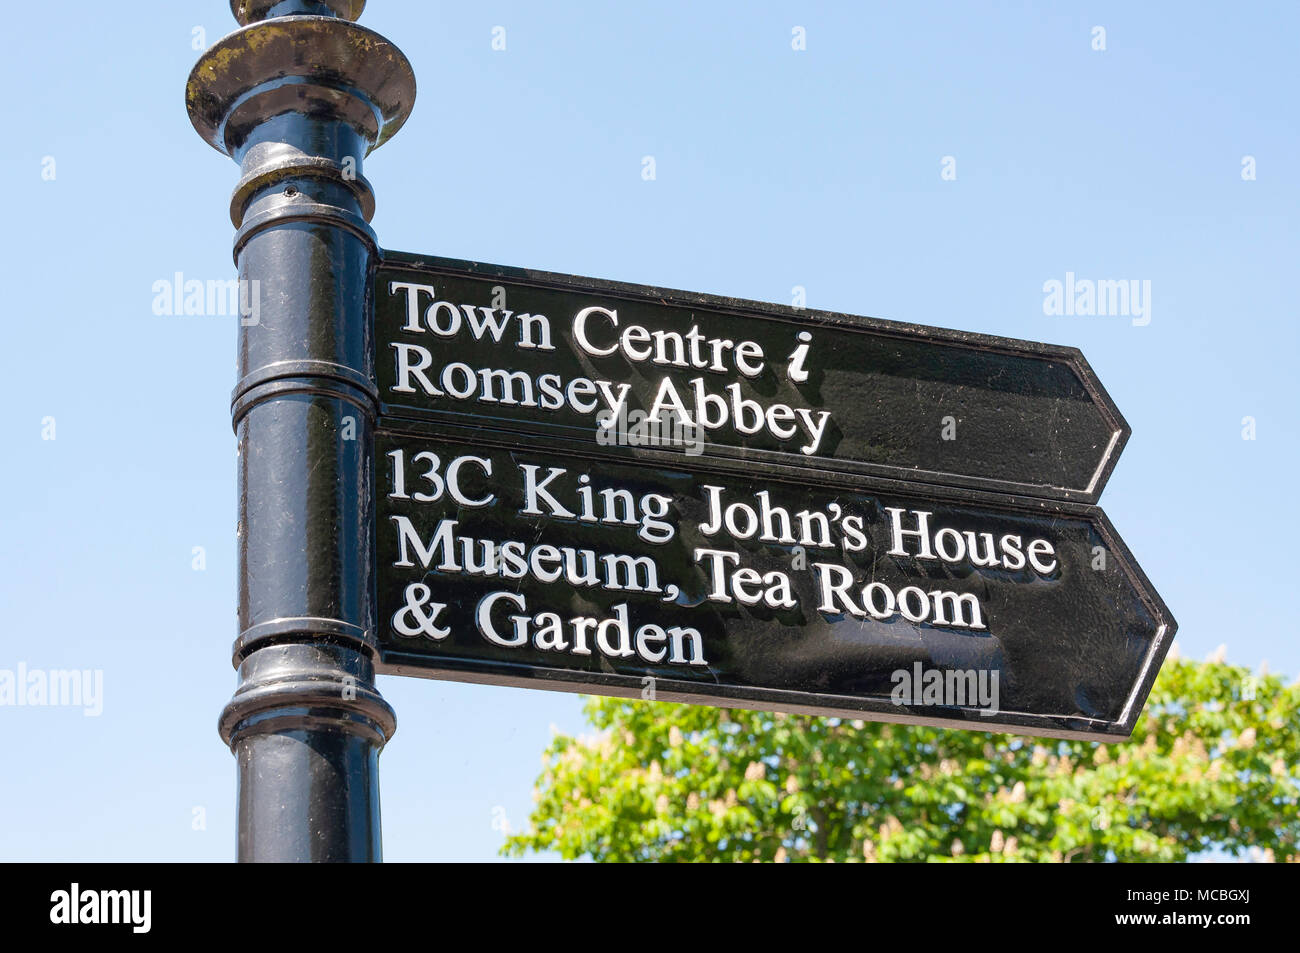 Attraction signpost Romney, Broadwater Road, Hampshire, England, United Kingdom - Stock Image